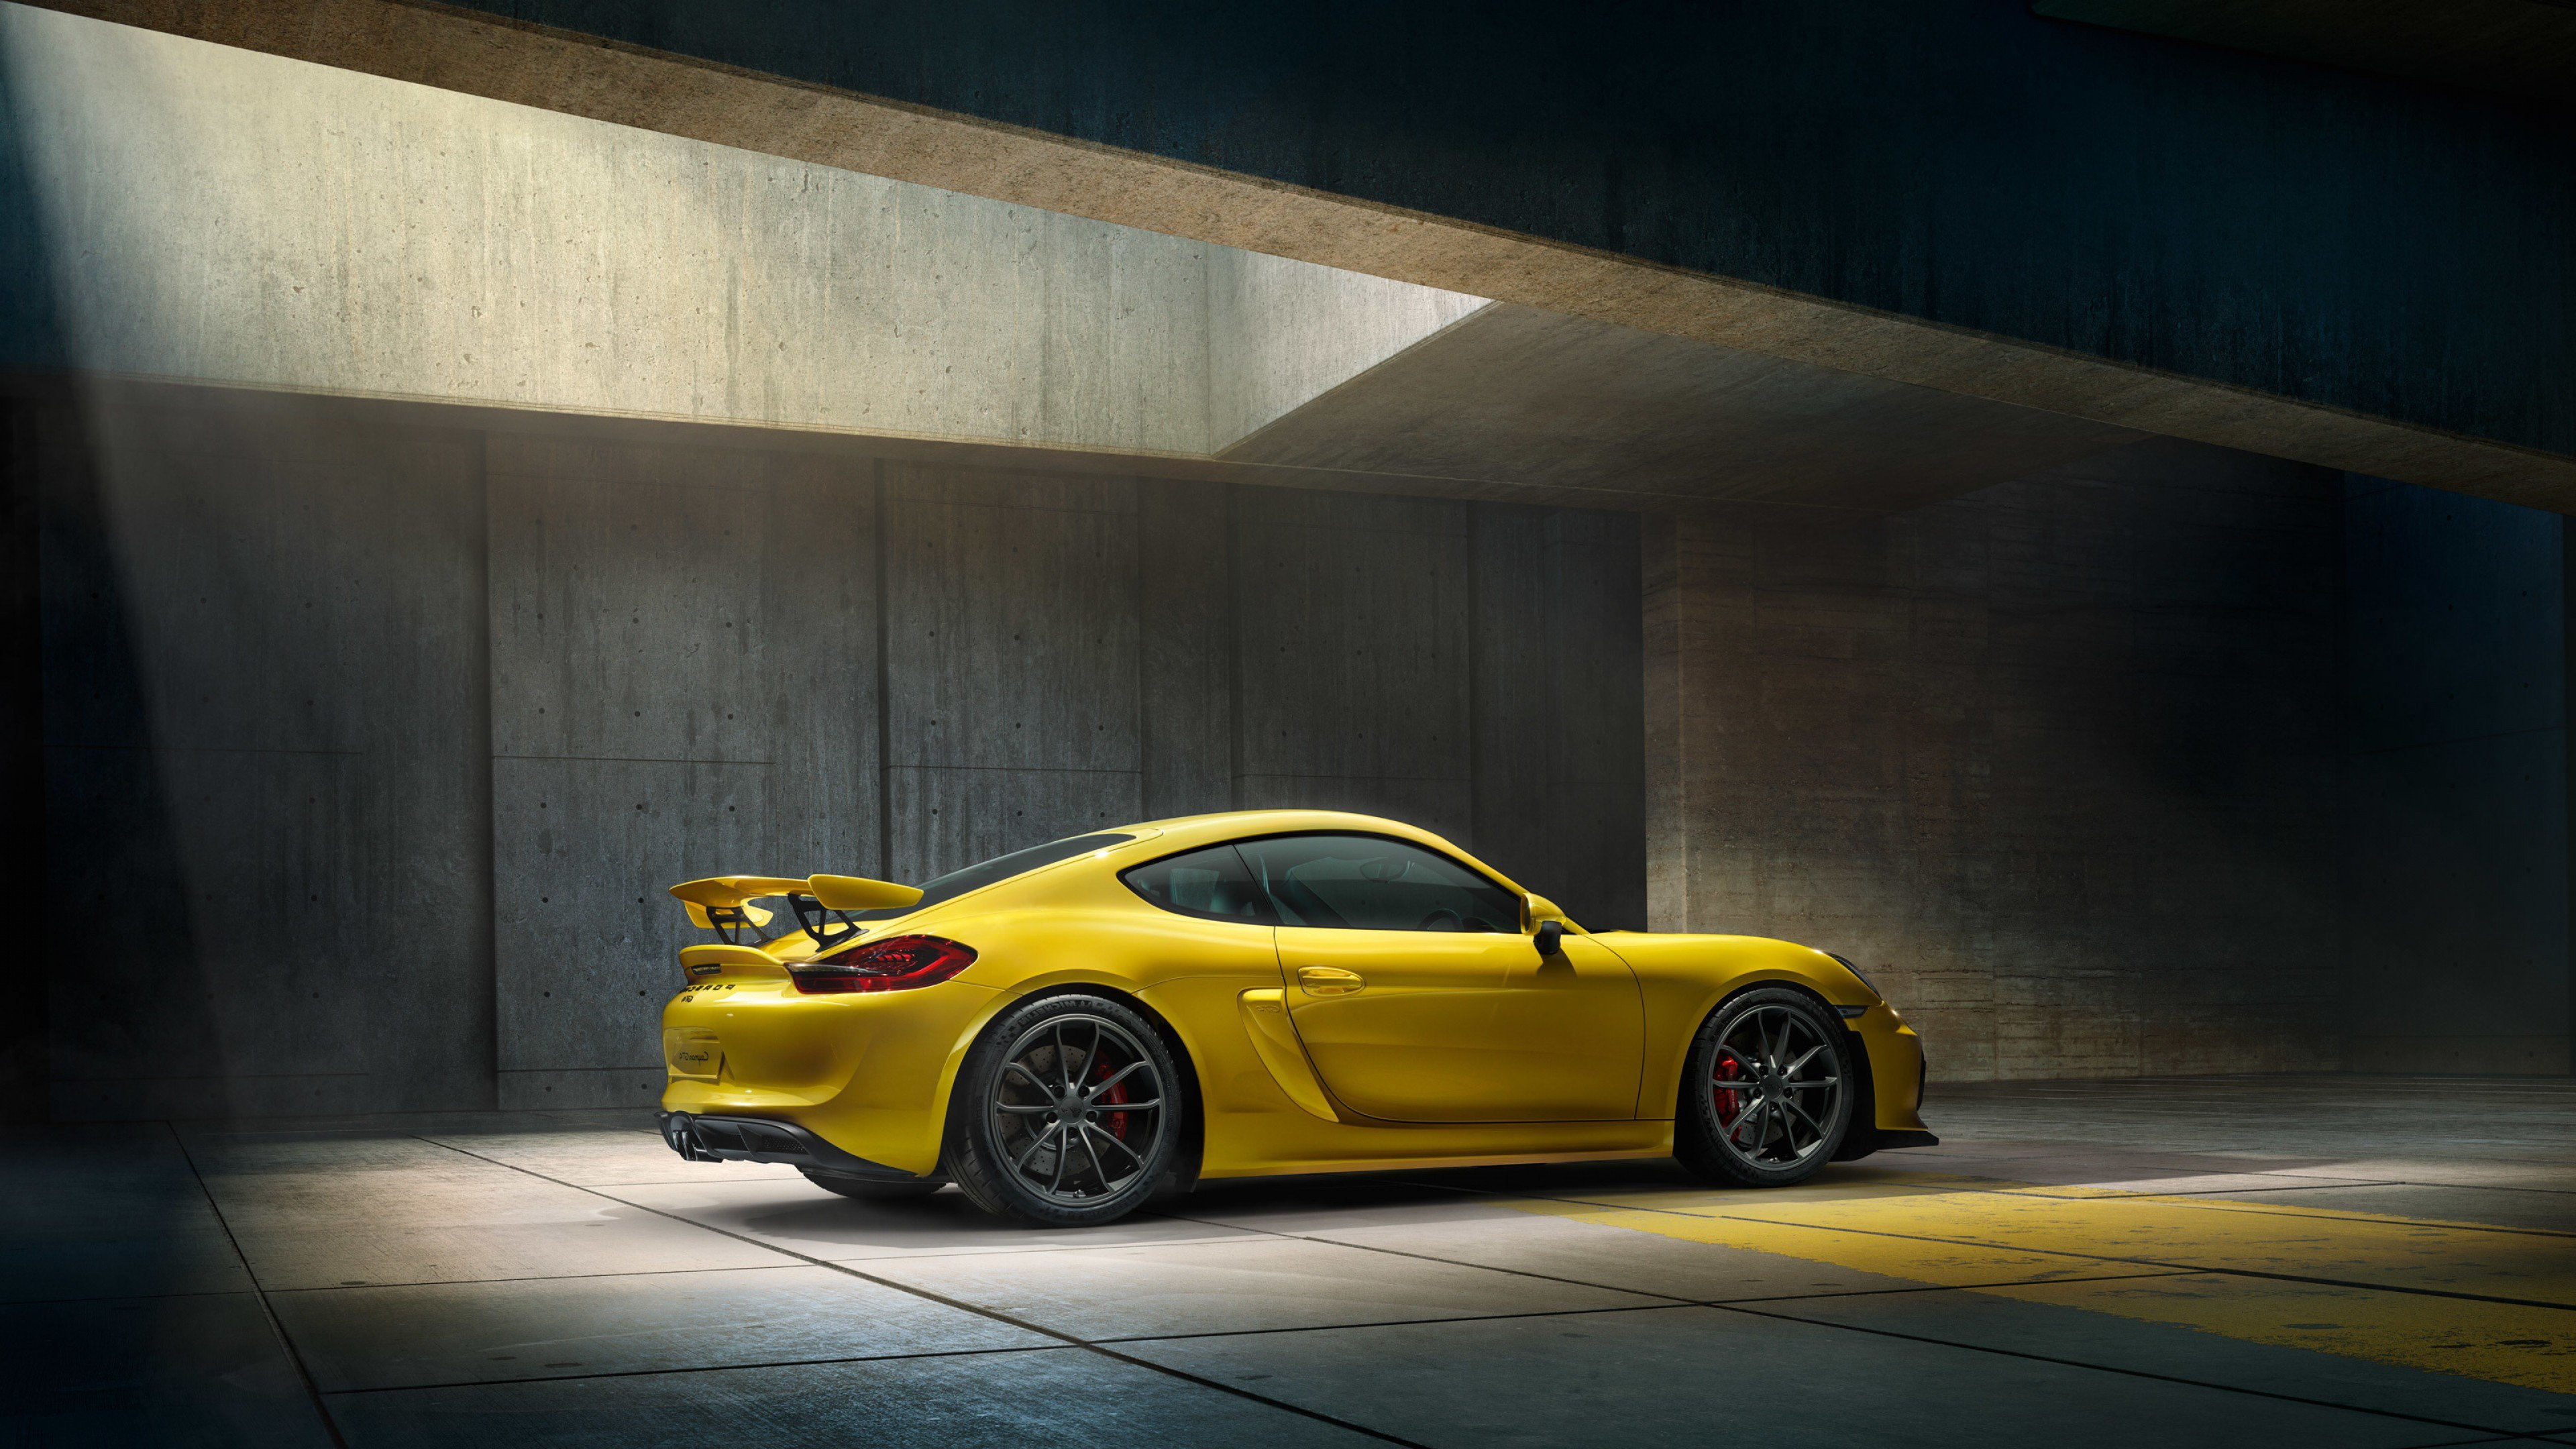 2016 Porsche Cayman GT4 HD, HD Cars, 4k Wallpapers, Images